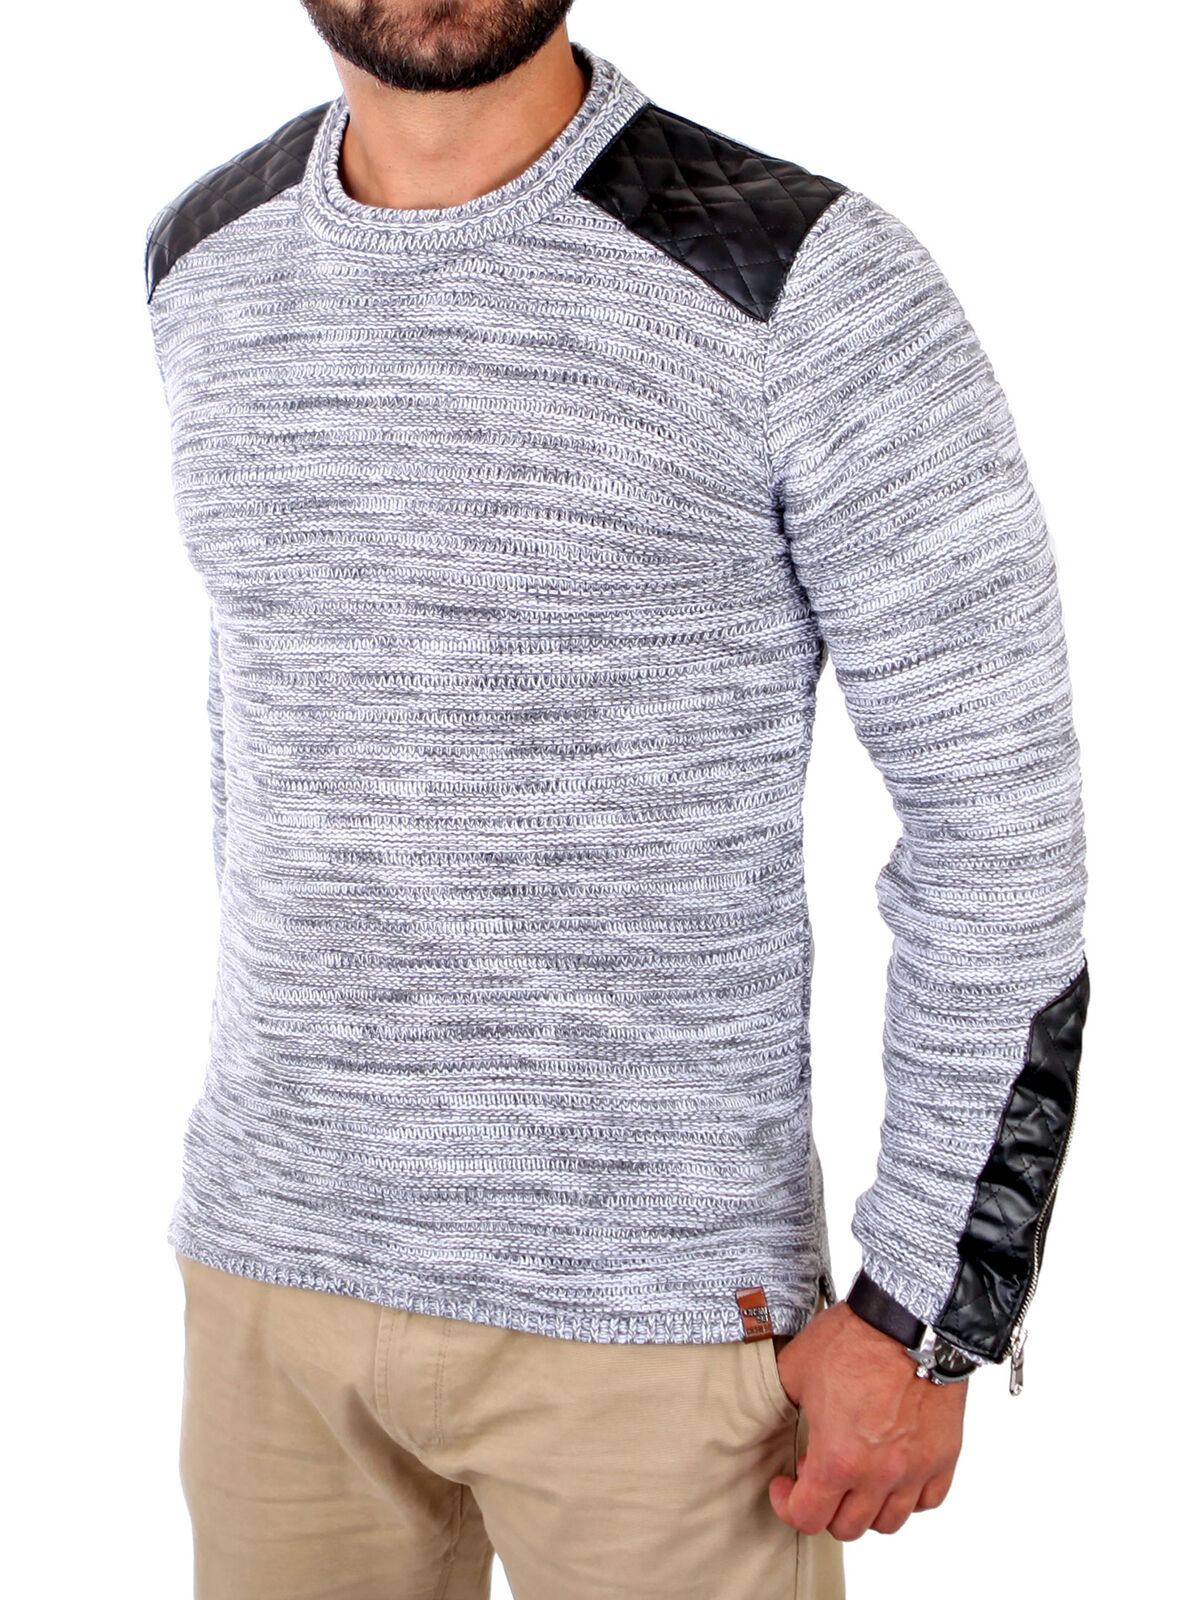 ... CARISMA pull tricoté Hommes NEUF Cuir synthétique patch Capuche CRSM -  7308 NEUF Hommes 7bc2ea ... 40aa05efe78a